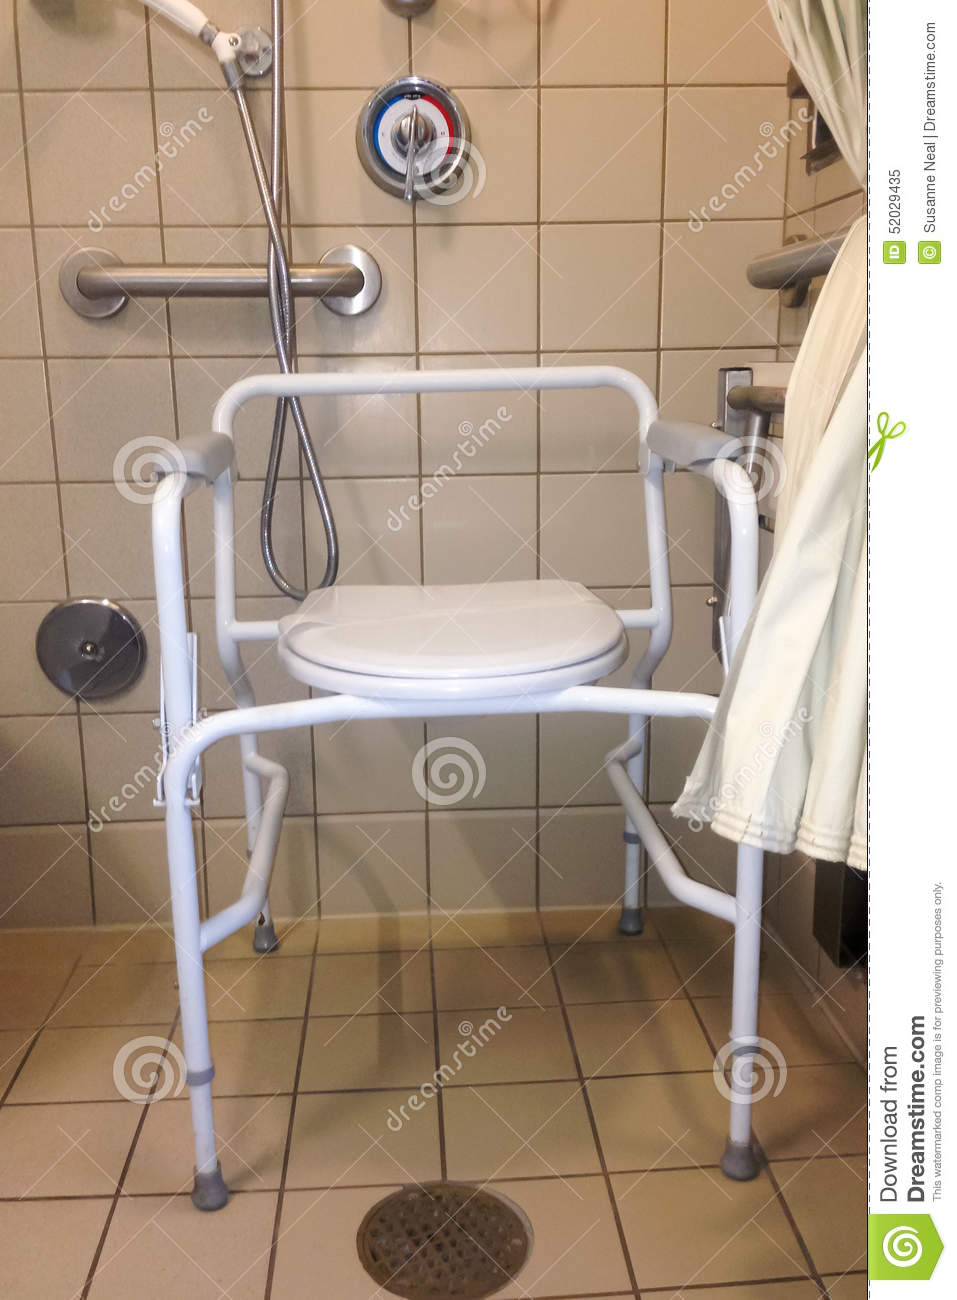 Bedside Commode Royalty Free Stock Photography